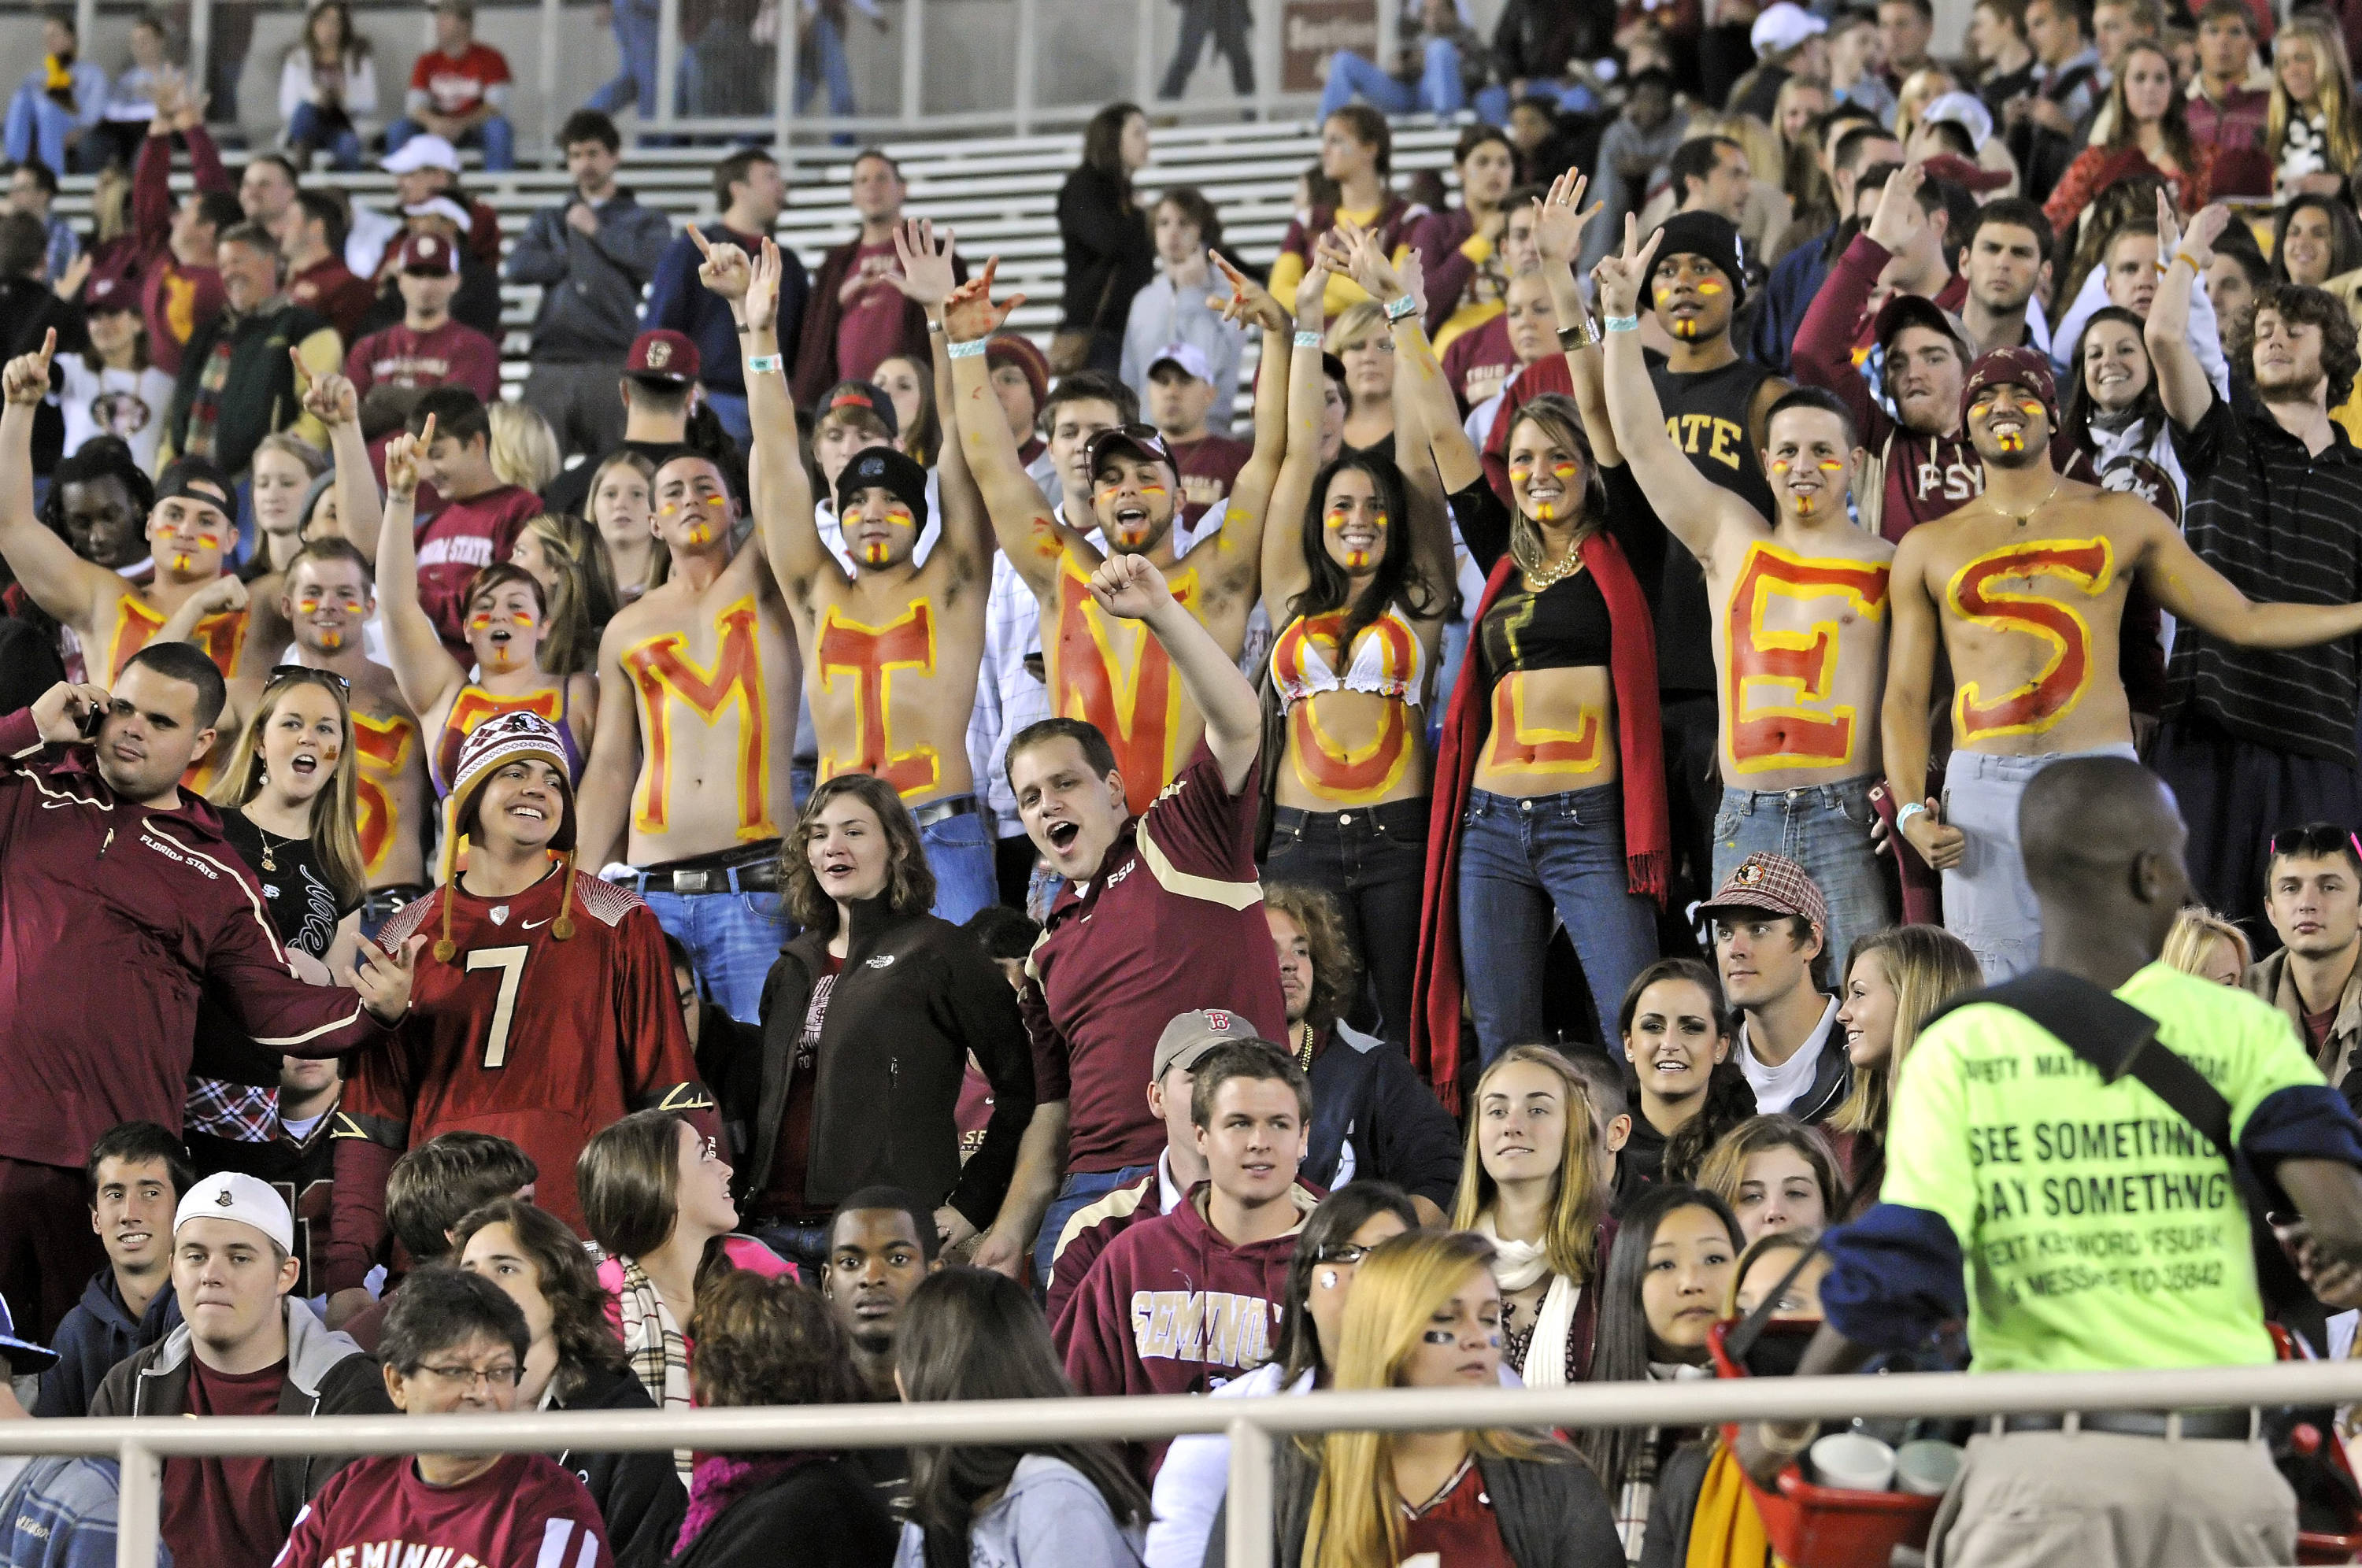 Seminole fans pumped for Saturday night's game